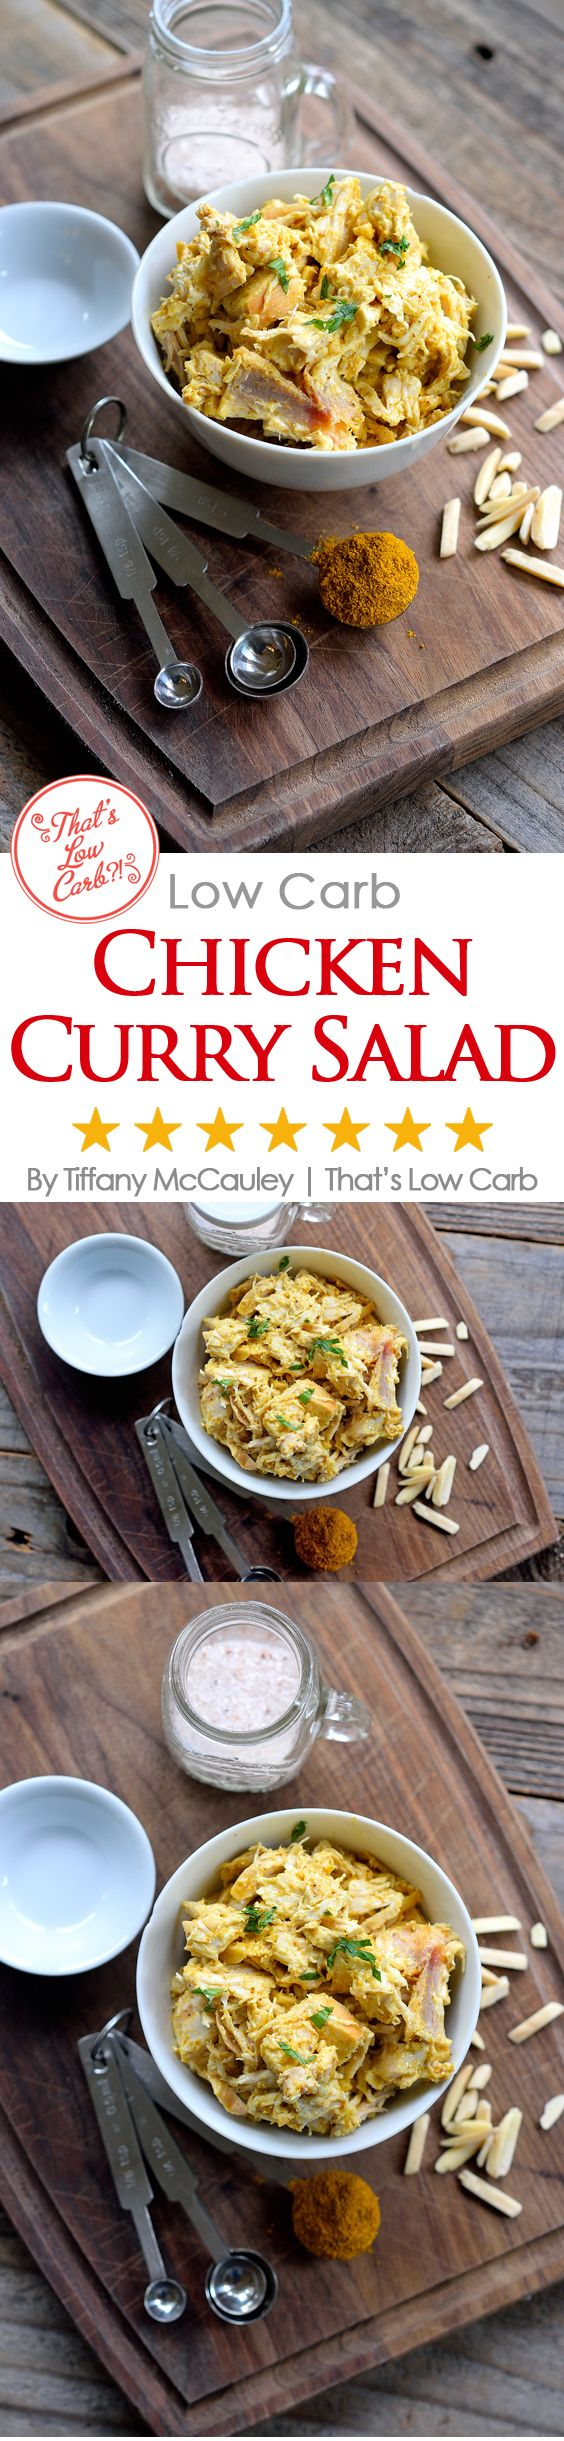 This delicious, low carb chicken curry salad is easy to make, travels well for lunch and will keep you full until dinner! From SkinnyCarb.com ~ http://www.thatslowcarb.com